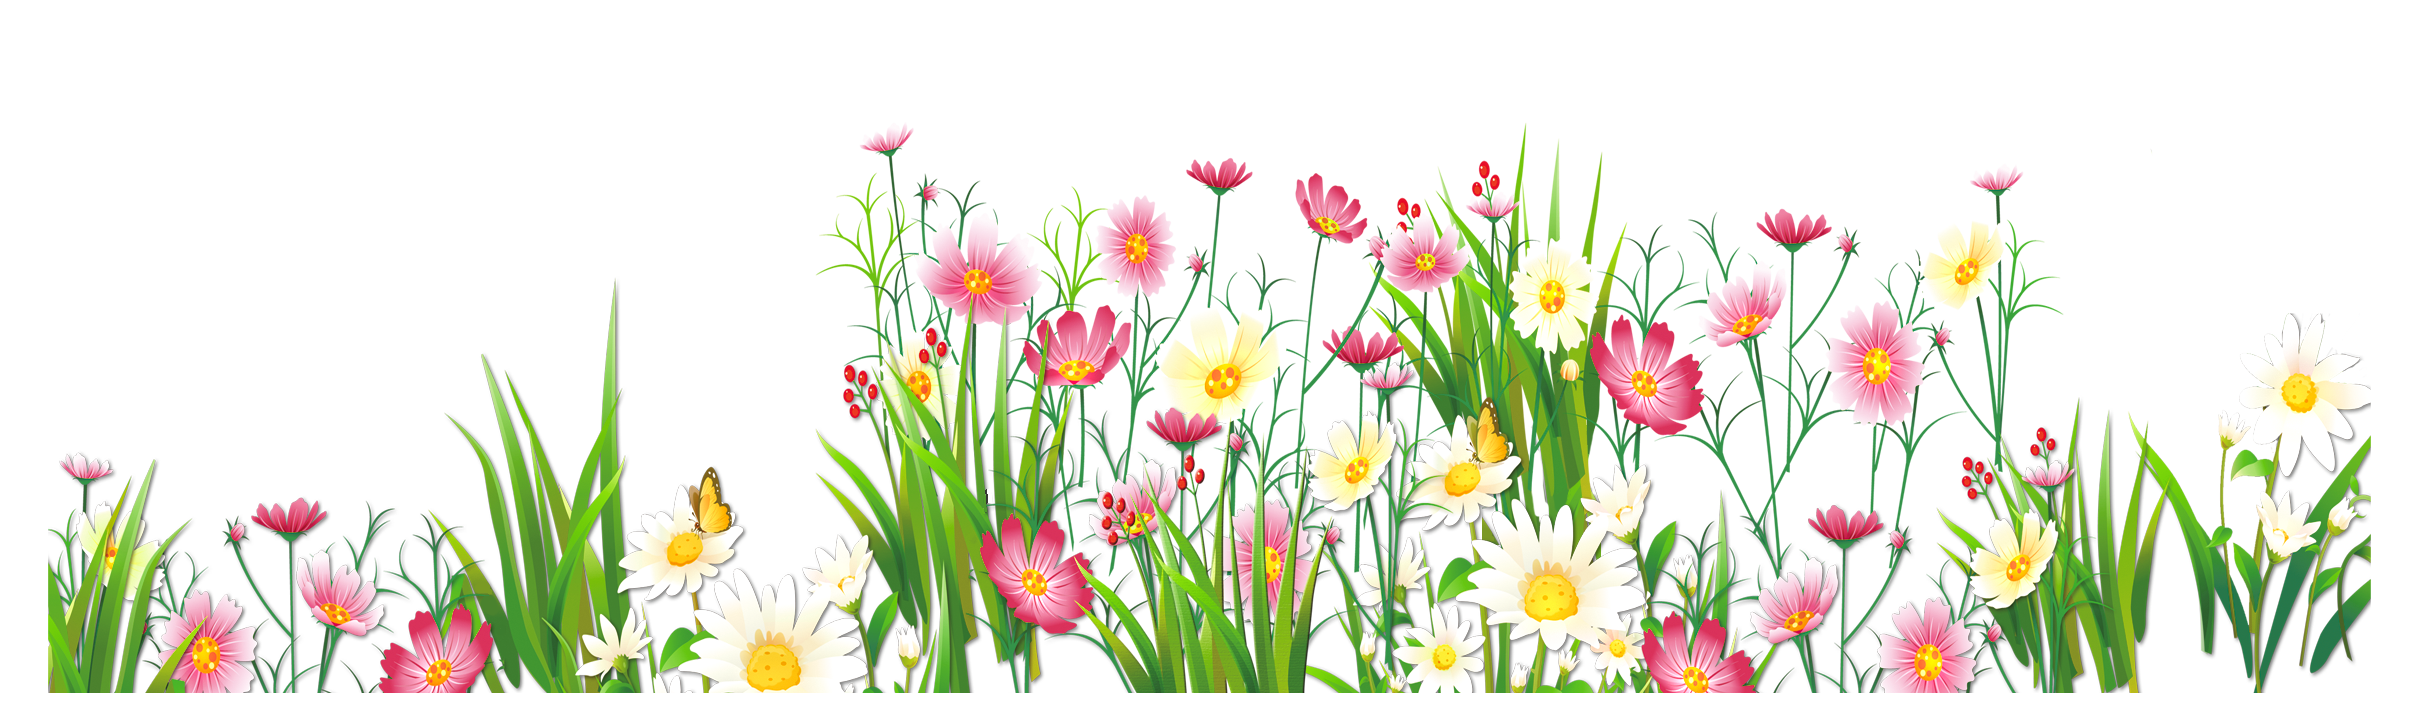 Grass Ground with Pink Flowers PNG Clipart | Spring Borders | Pinterest |  Clip art - Flower PNG Jpg